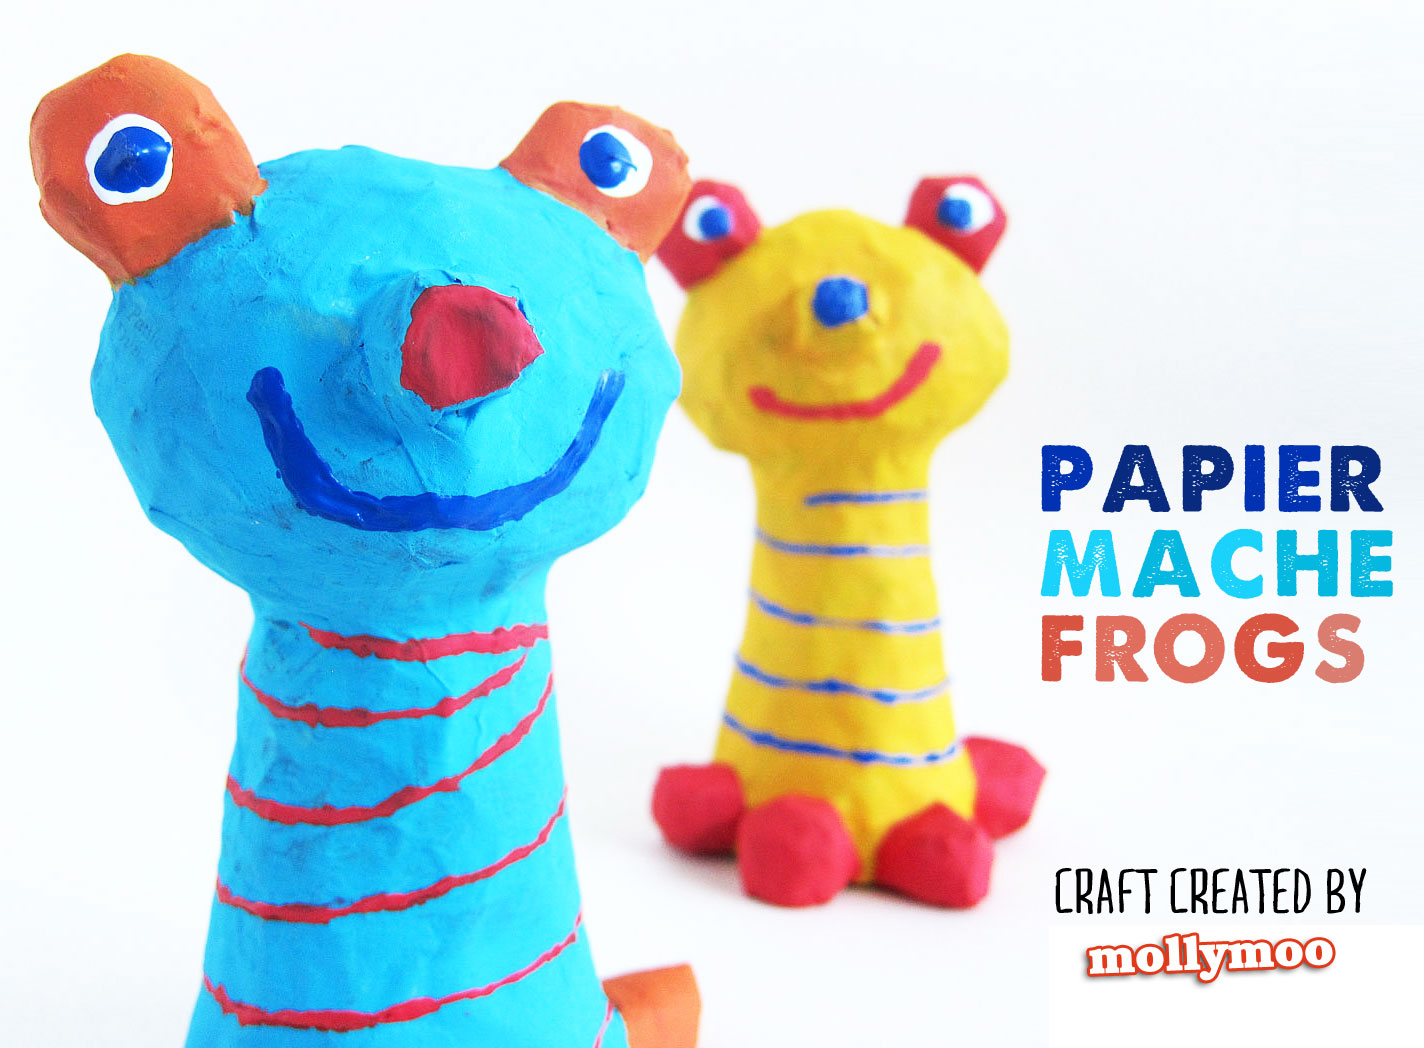 mollymoocrafts papier mache crafts for kids frog to